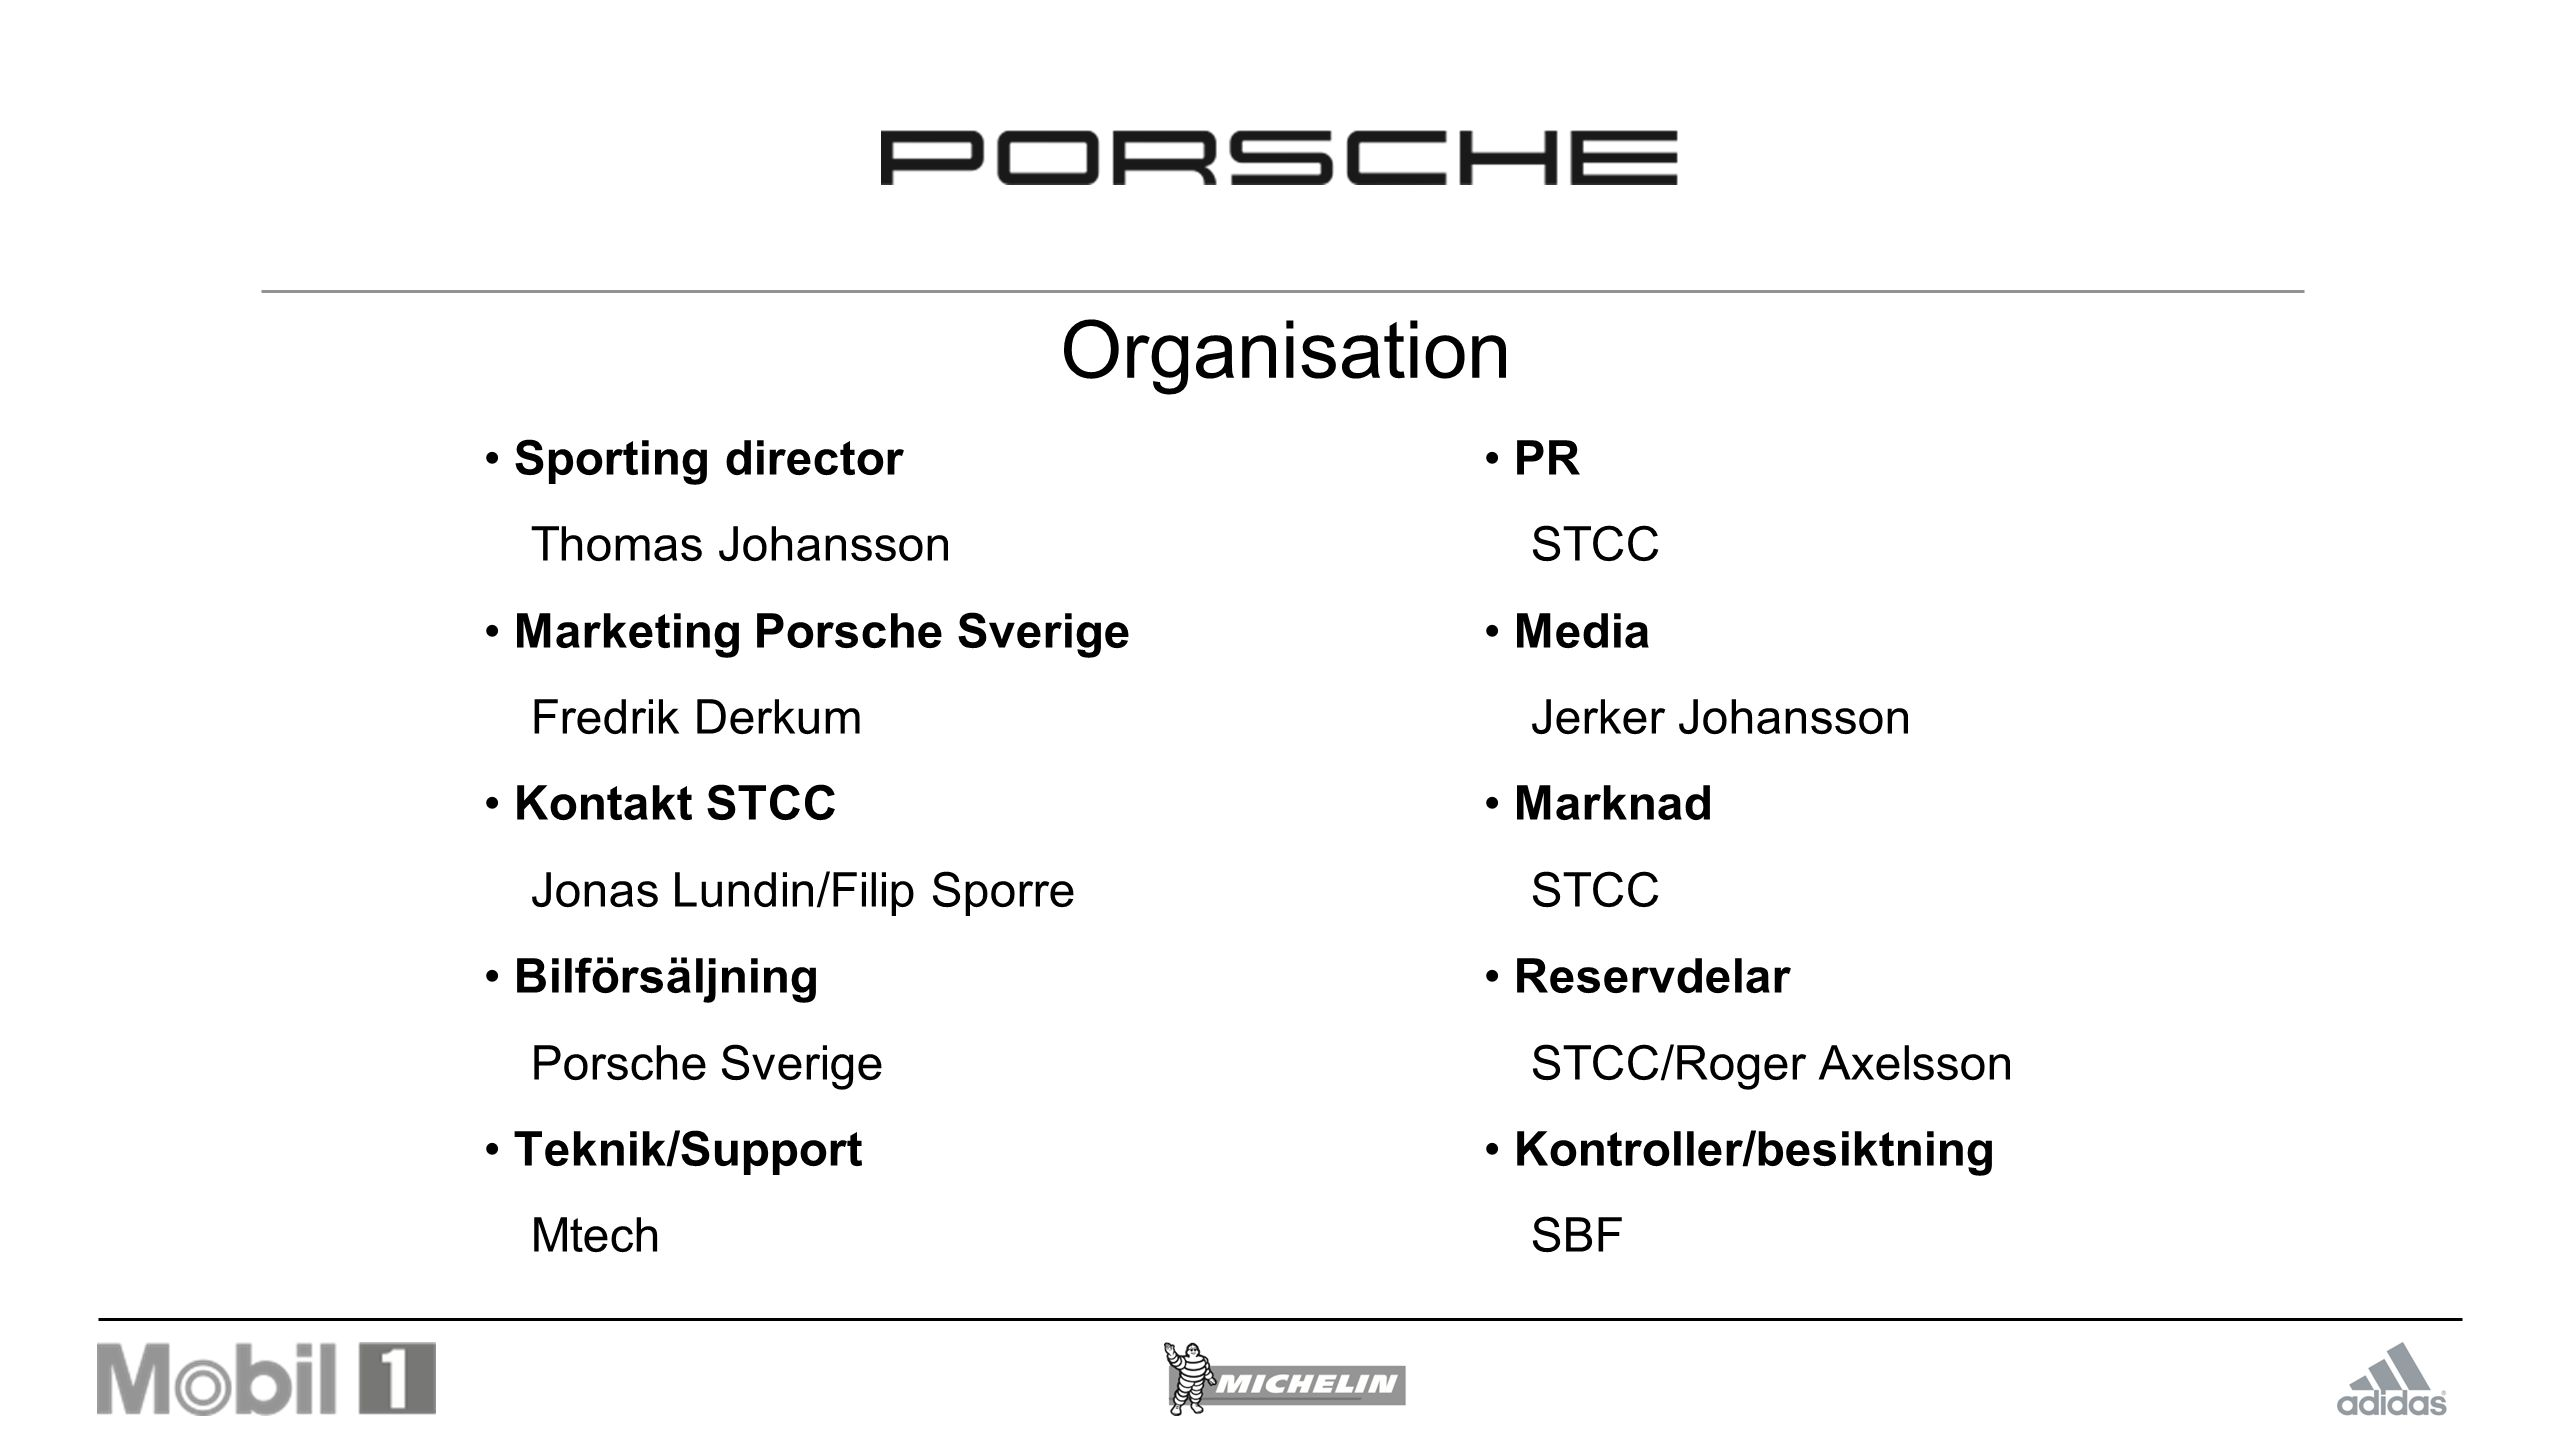 Organisation • Sporting director Thomas Johansson • PR STCC